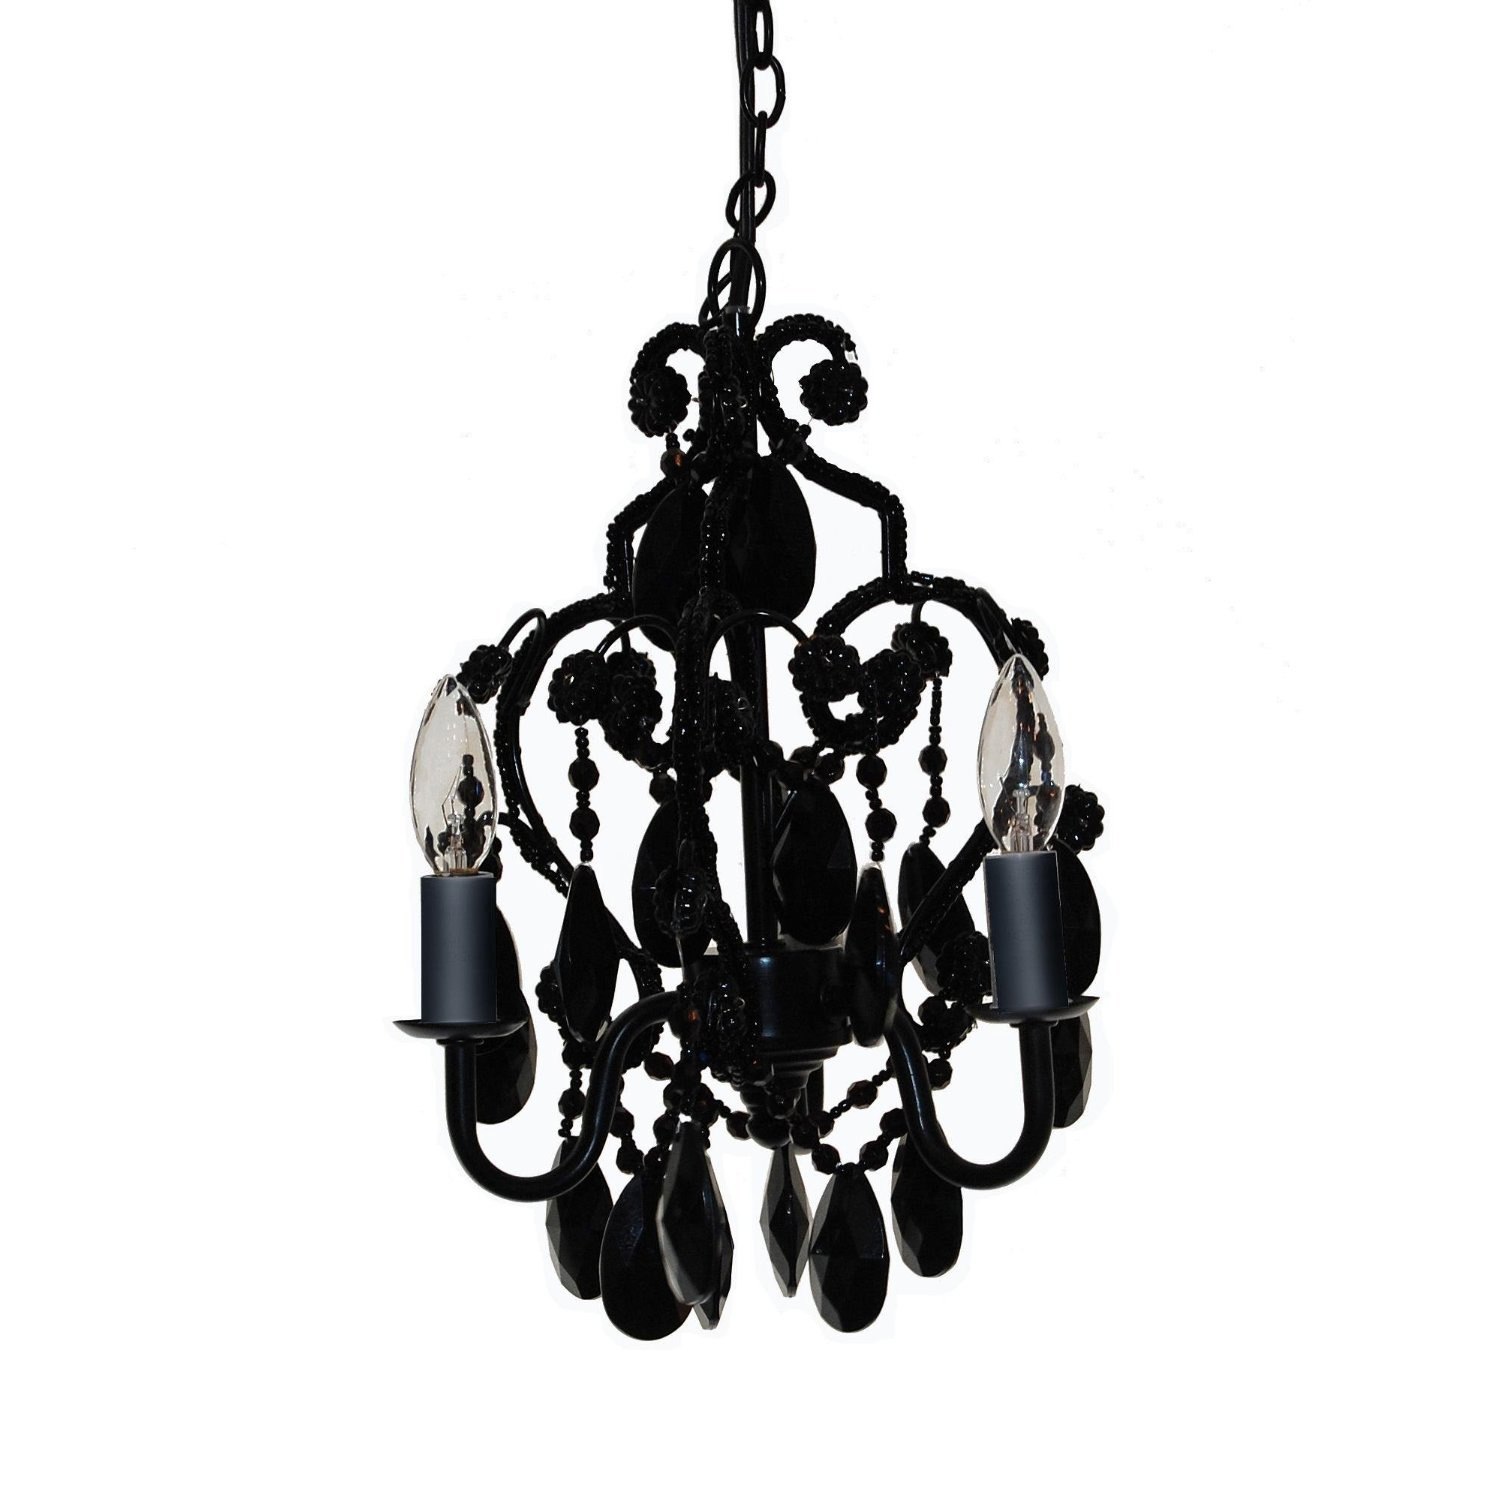 This Three Light Bulb Faux Crystal Chandelier in Black Onyx is a beautiful mini-chandelier for your little girl's room. Chandelier has glass and acrylic beads and dangles. It uses three 25-watt candelabra bulbs which are included. Hang either with cord and plug as swag, or professionally install with included chain and ceiling cover plate. UL listed.